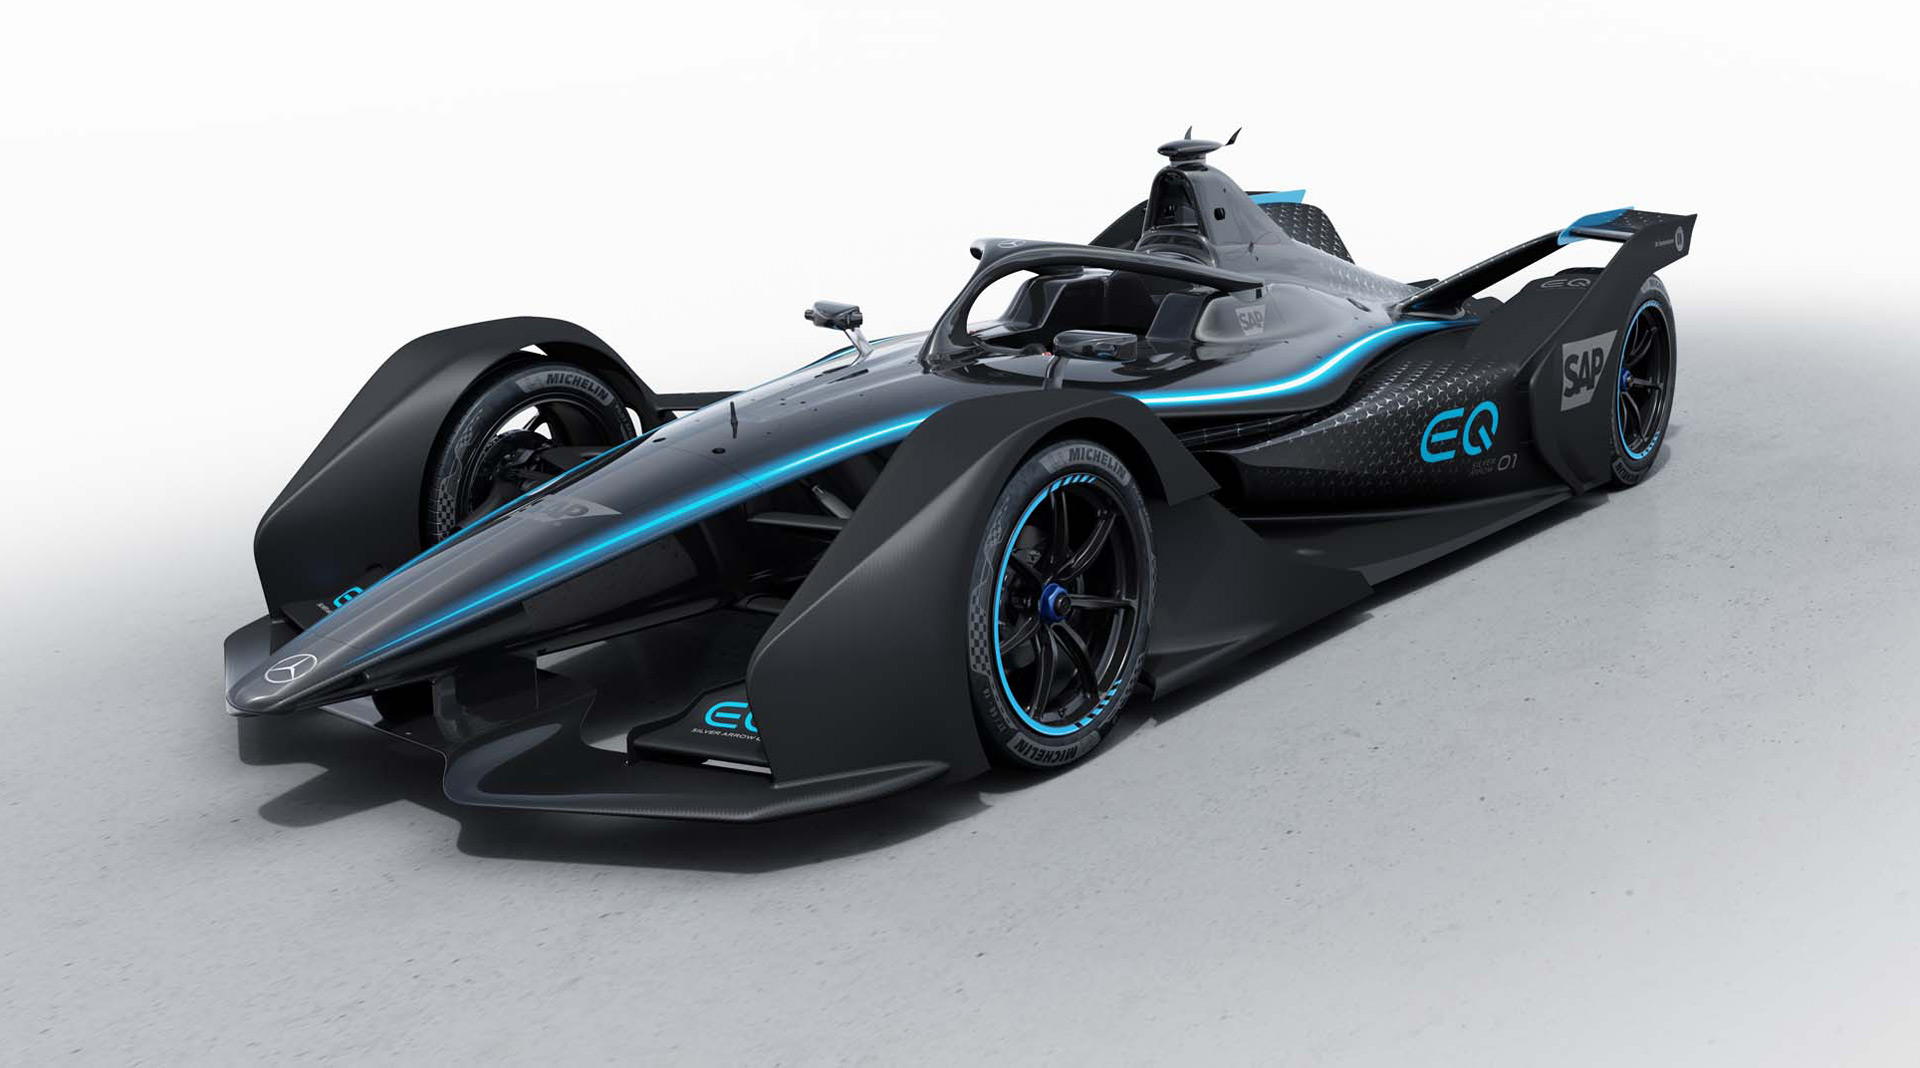 Mercedes gears up for Formula E with Silver Arrow 01 race ...